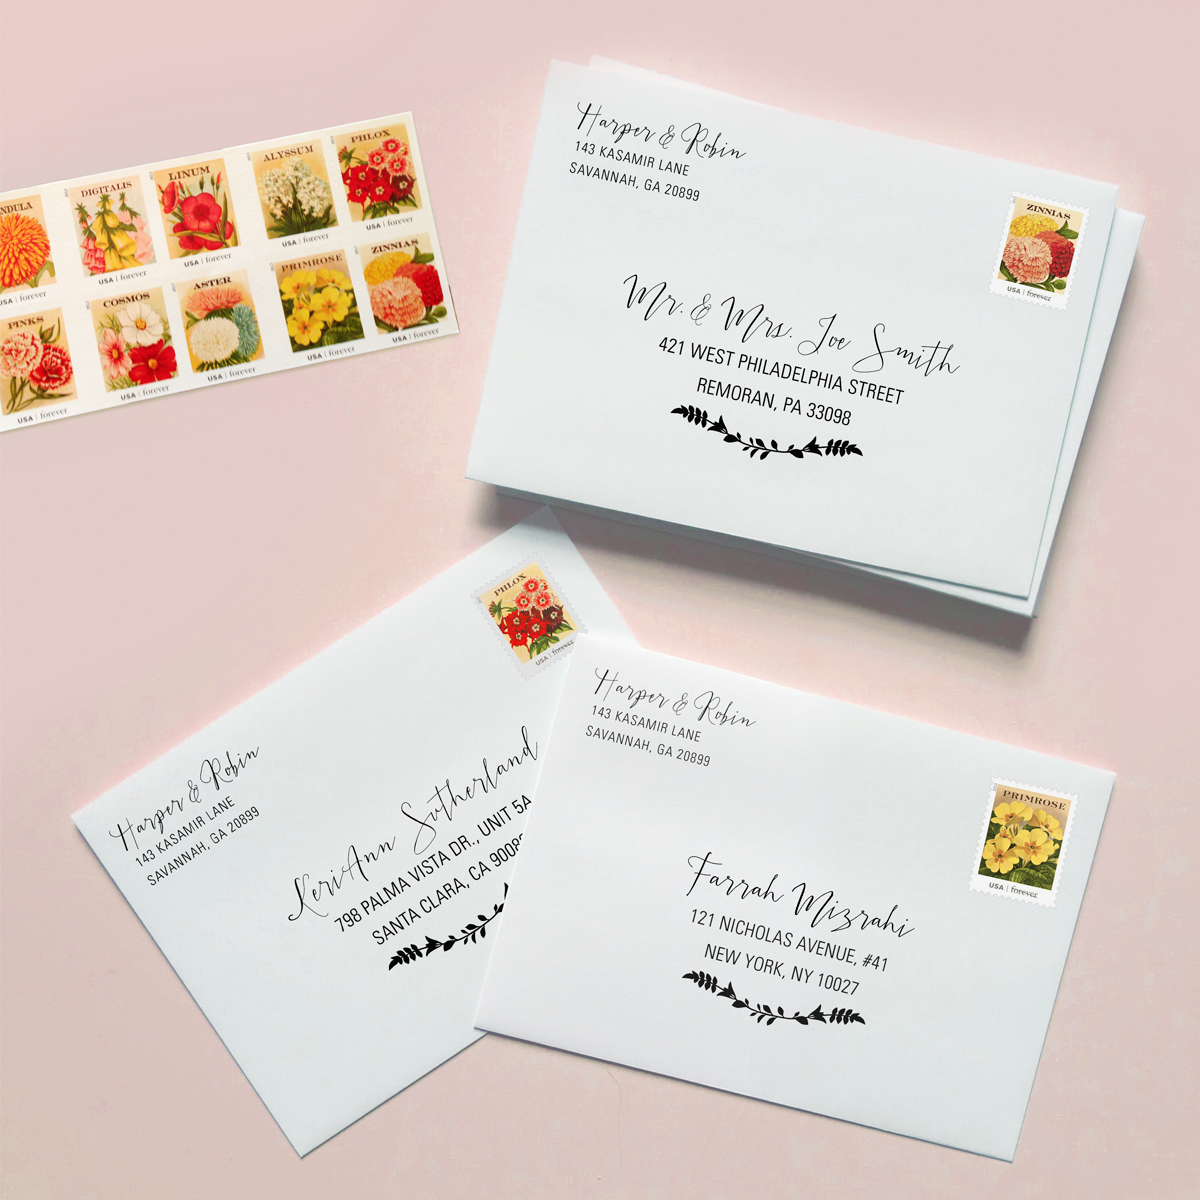 How To Address Wedding Gift Envelope : The Feminist Guide to Addressing Wedding Invitations